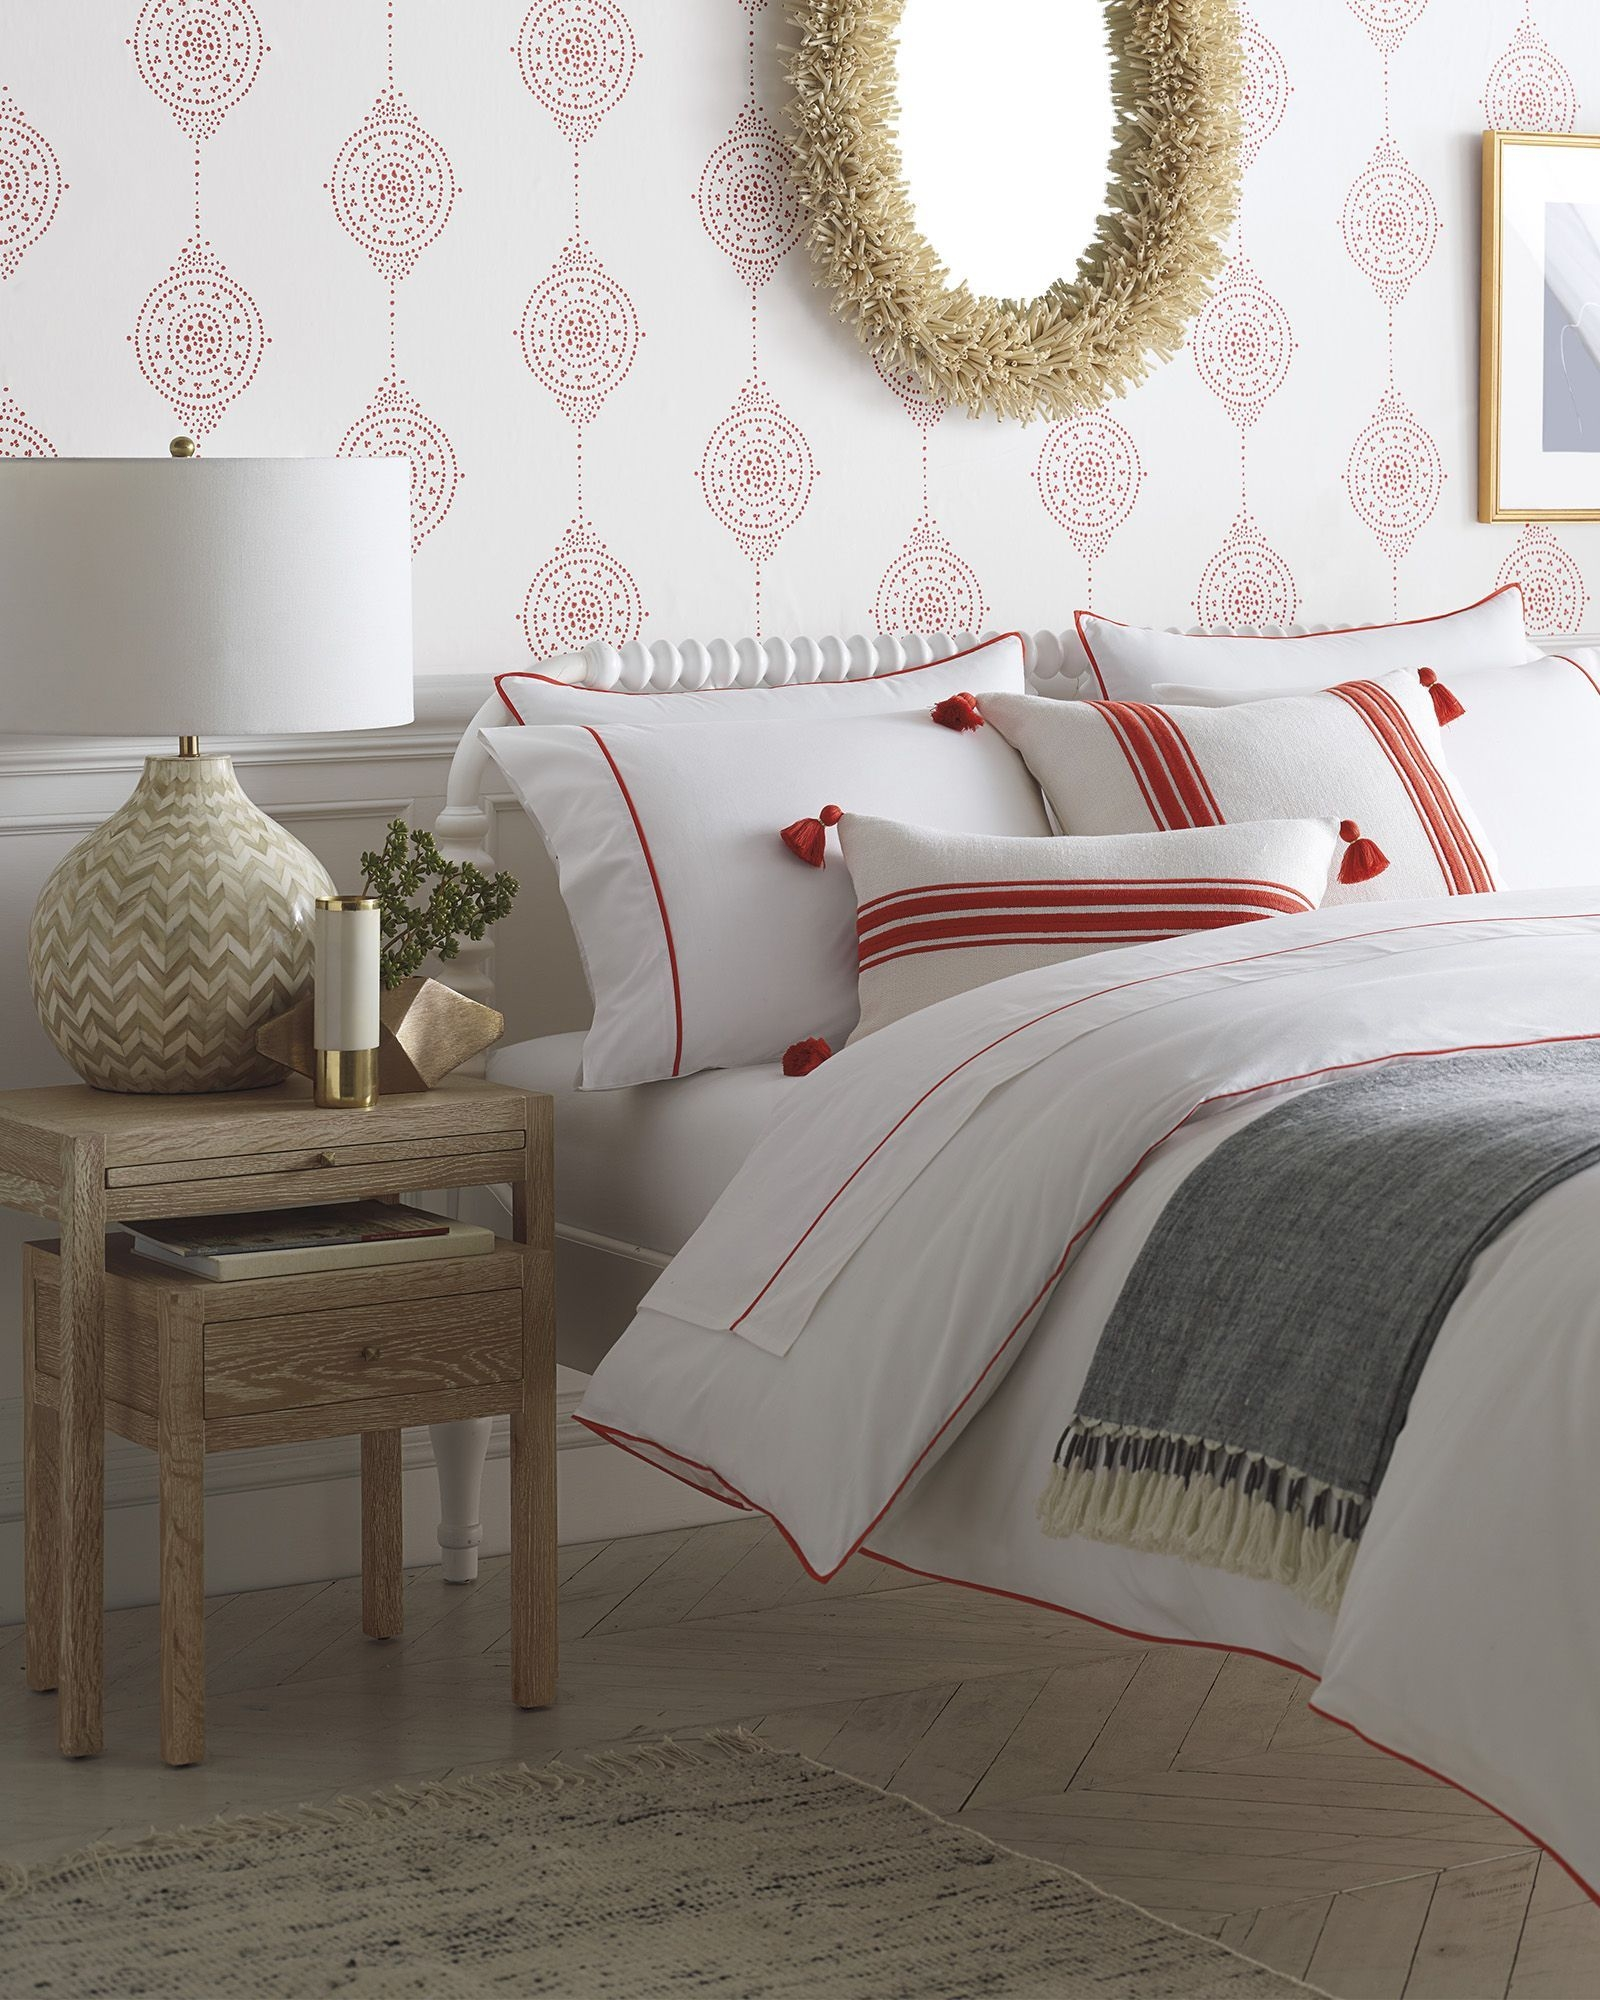 Inexpensive Easter Bedroom Interior Design Ideas That You Need To Know 12